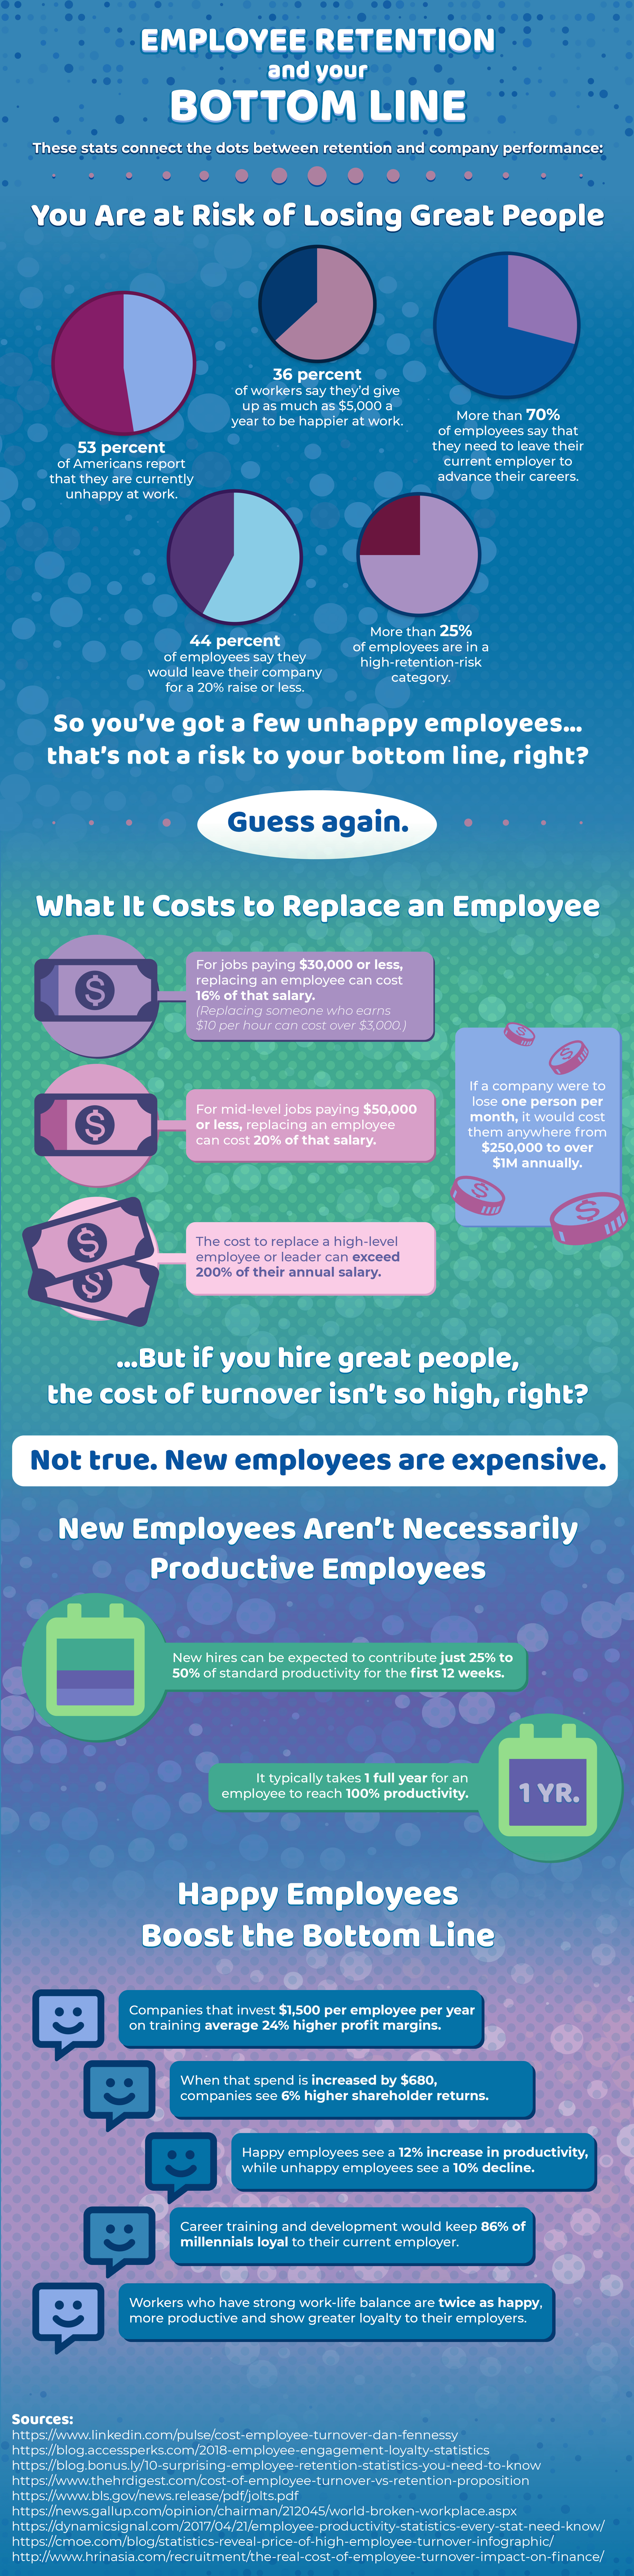 Employee Retention and Your Bottom Line